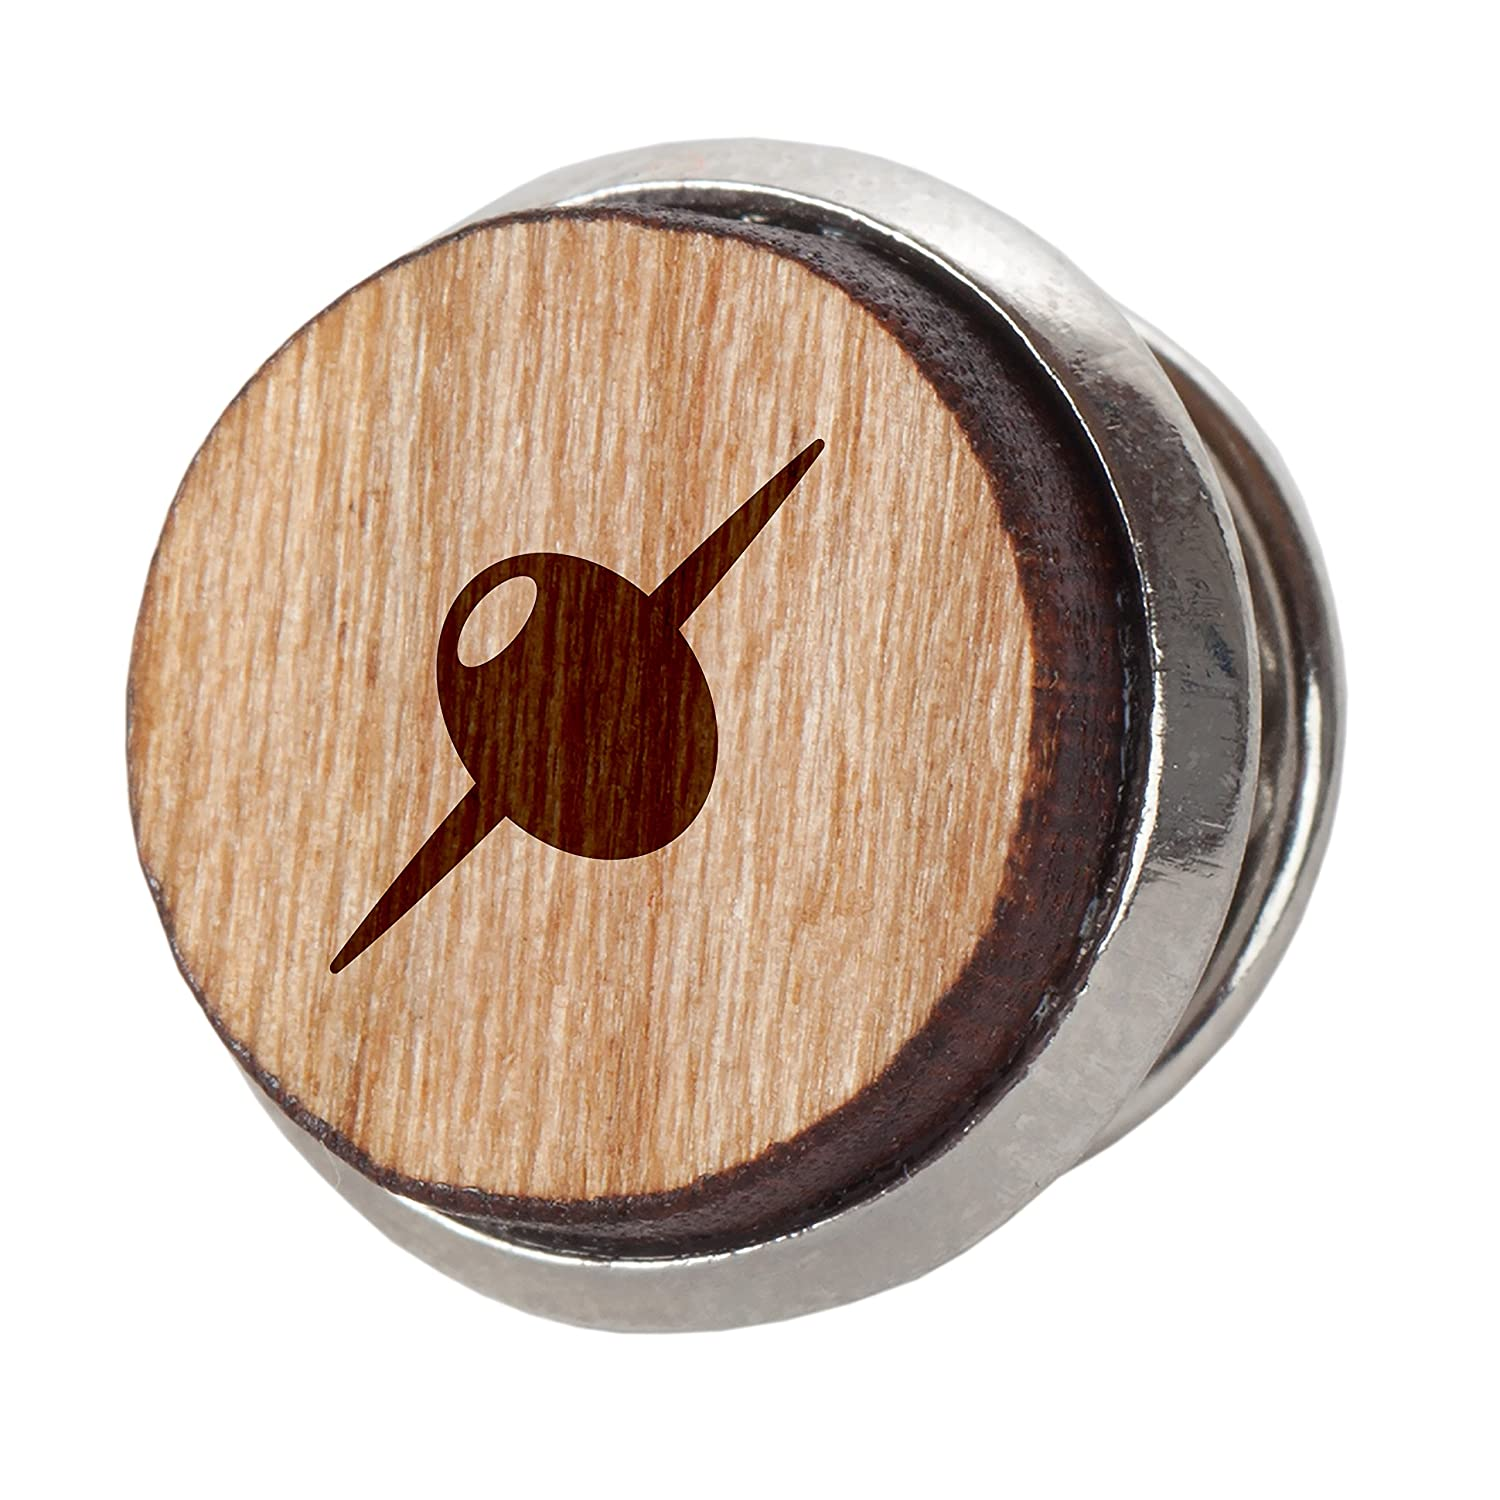 12Mm Simple Tie Clip with Laser Engraved Design Engraved Tie Tack Gift Olive Stylish Cherry Wood Tie Tack